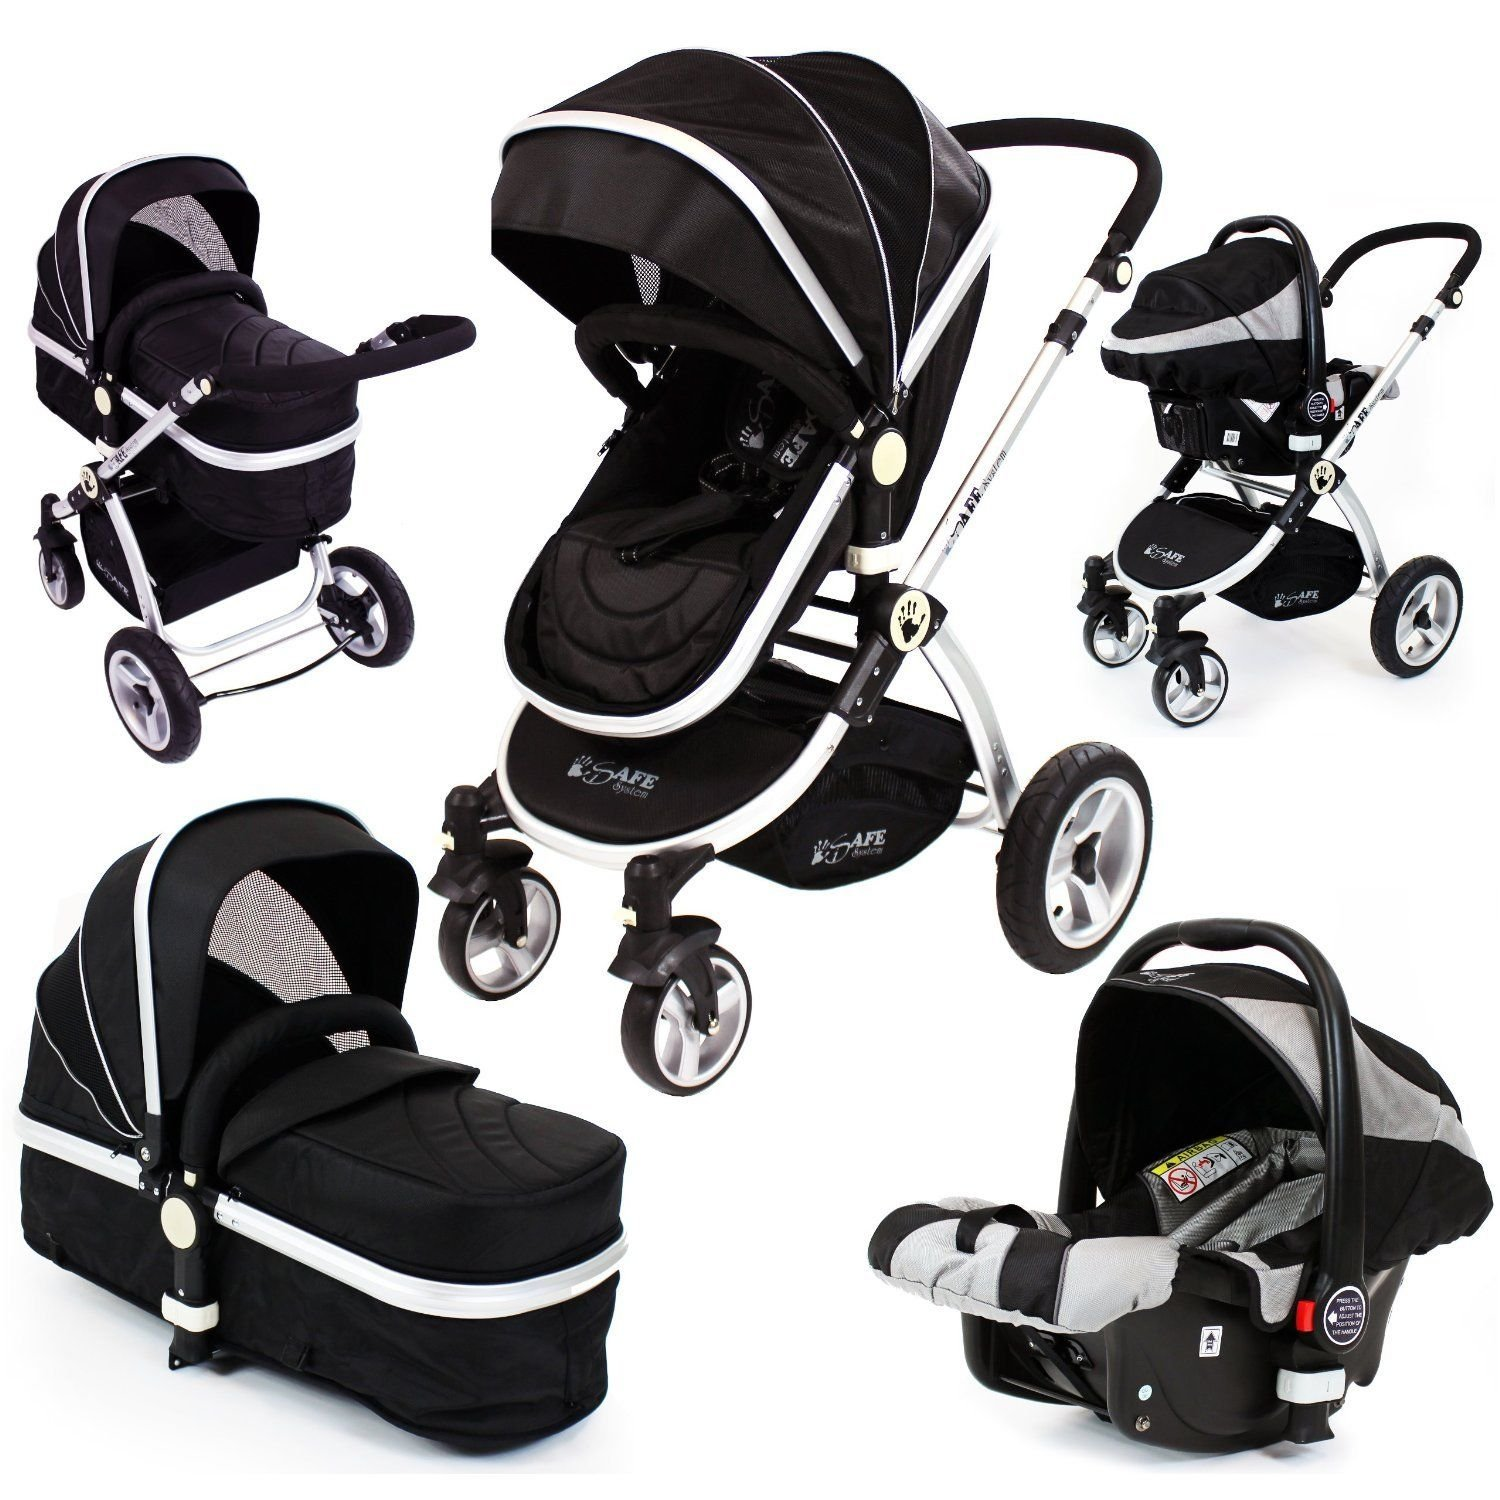 Isafe 3in1 pram travel system includes carseat raincovers amazon co uk baby